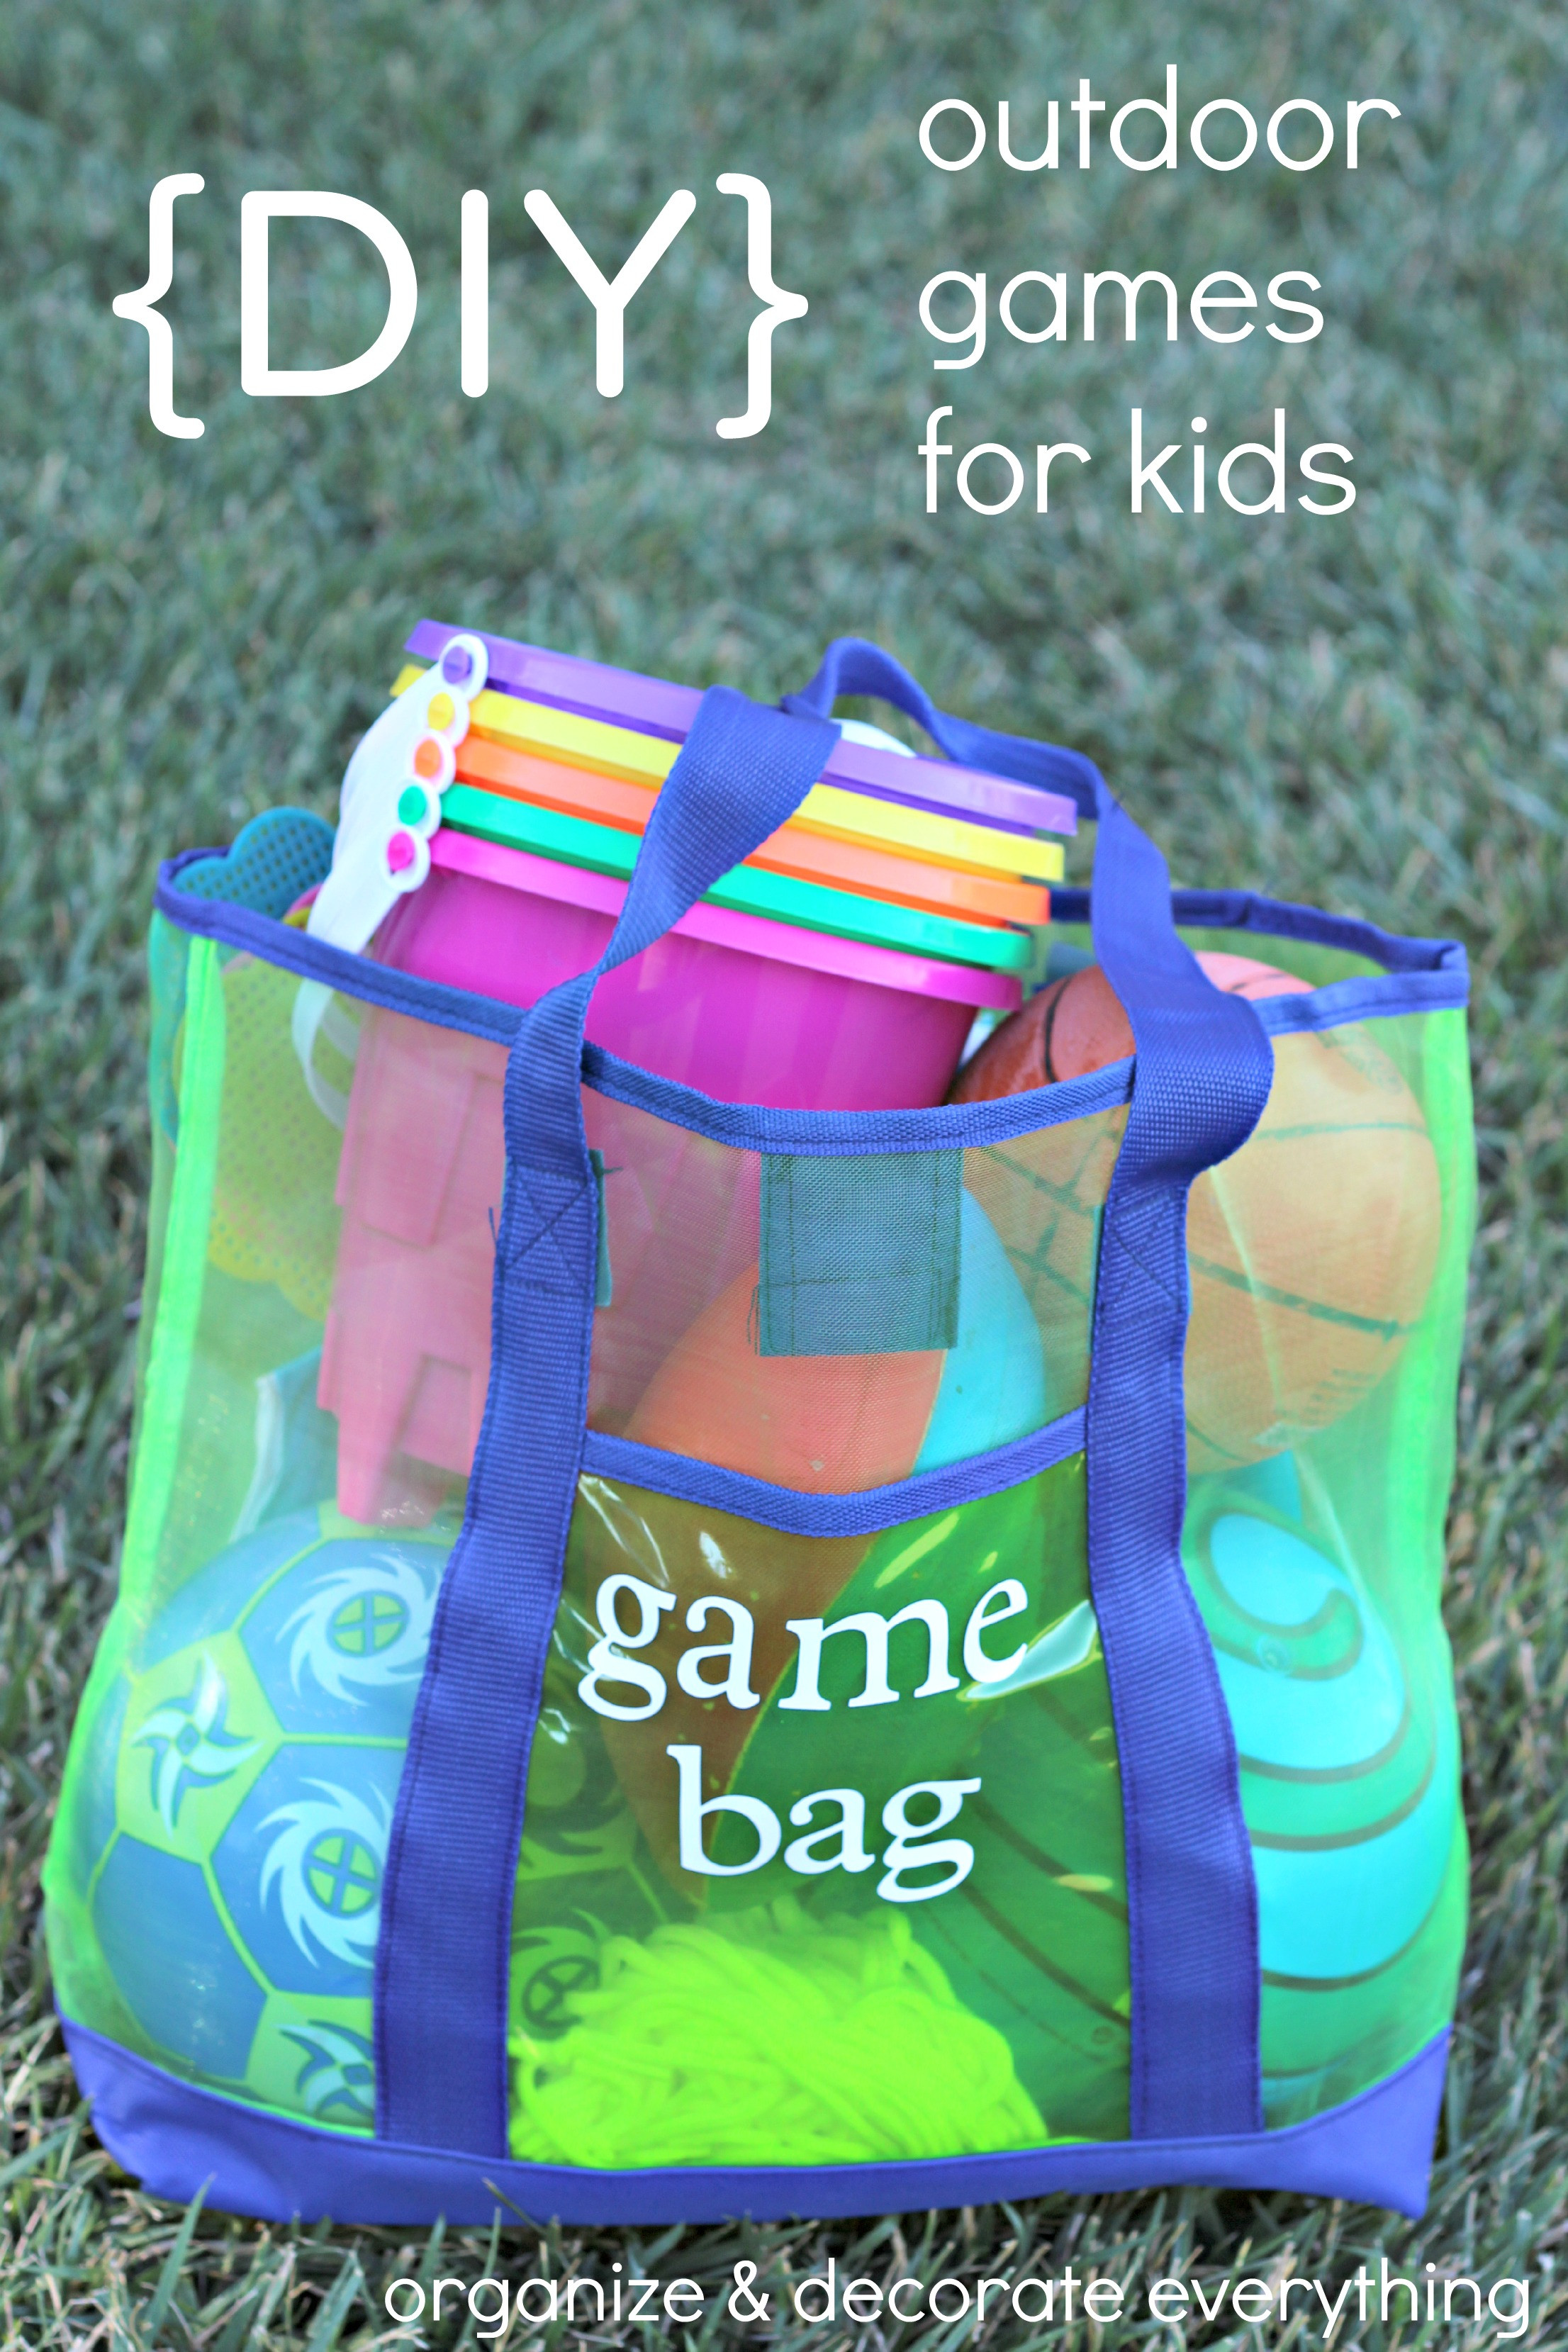 Best ideas about DIY Activities For Kids . Save or Pin DIY Outdoor Games for Kids Organize and Decorate Everything Now.